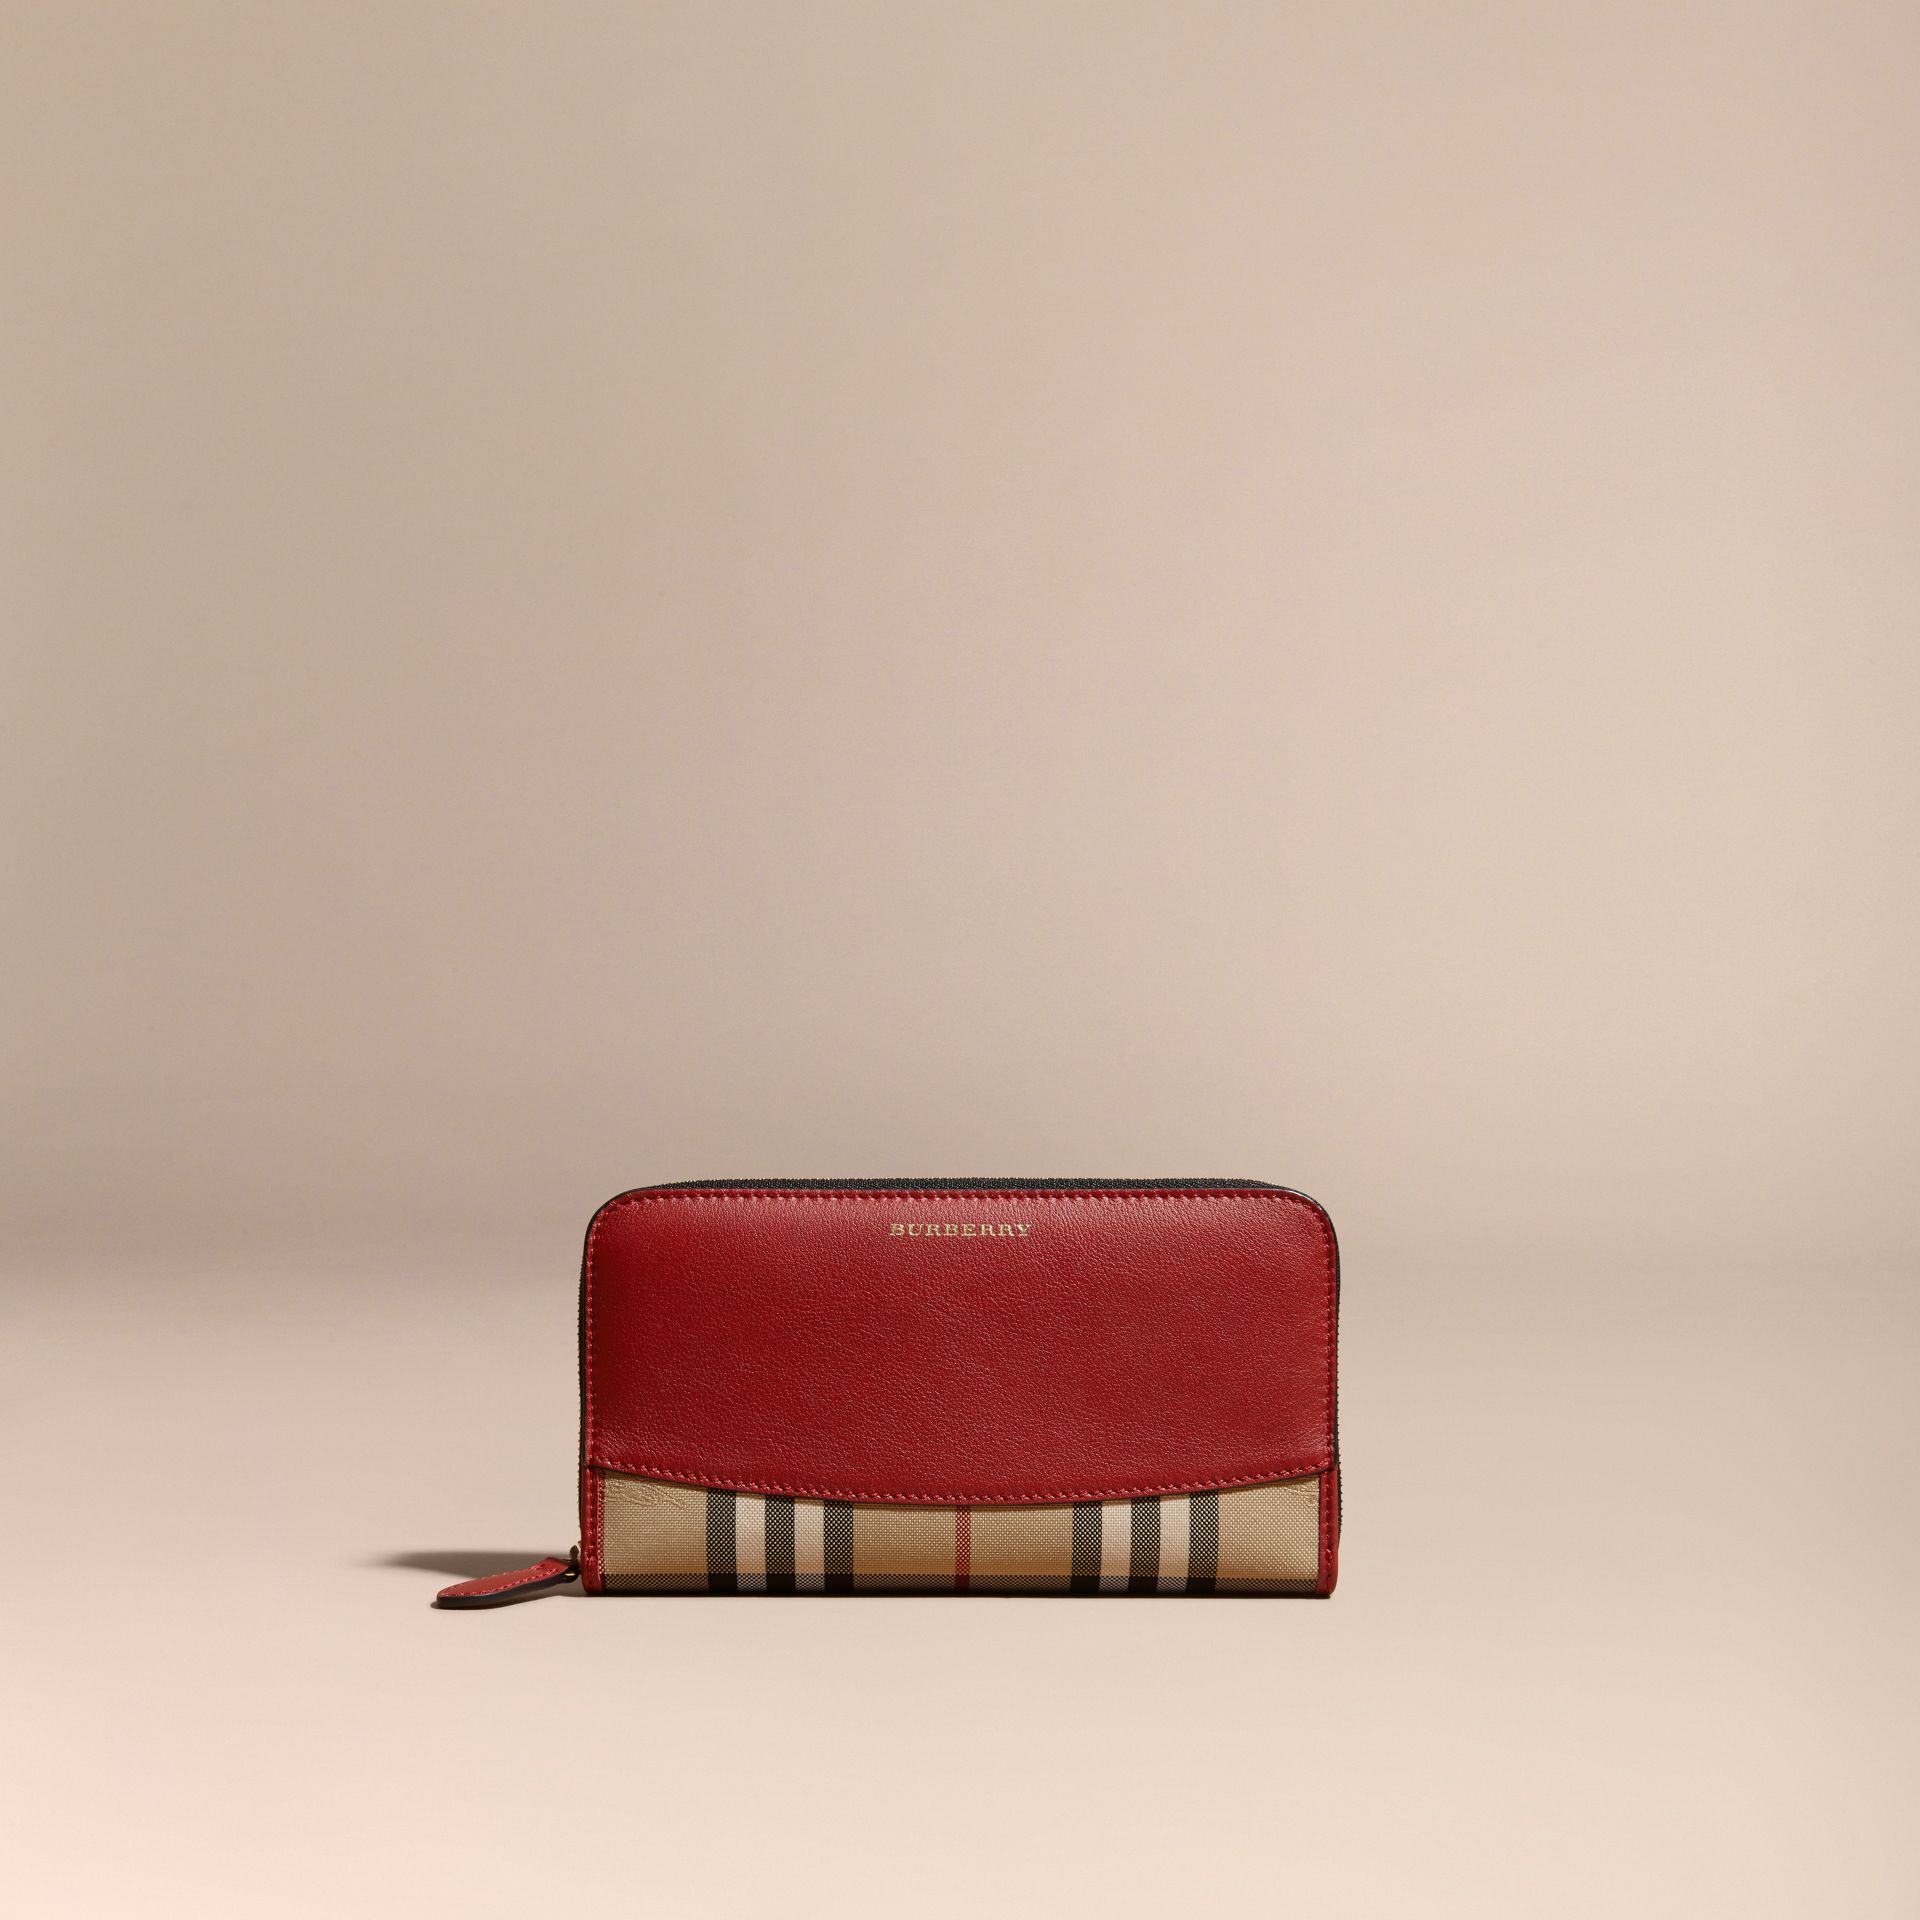 Horseferry Check and Leather Ziparound Wallet in Parade Red - Women | Burberry Canada - gallery image 6